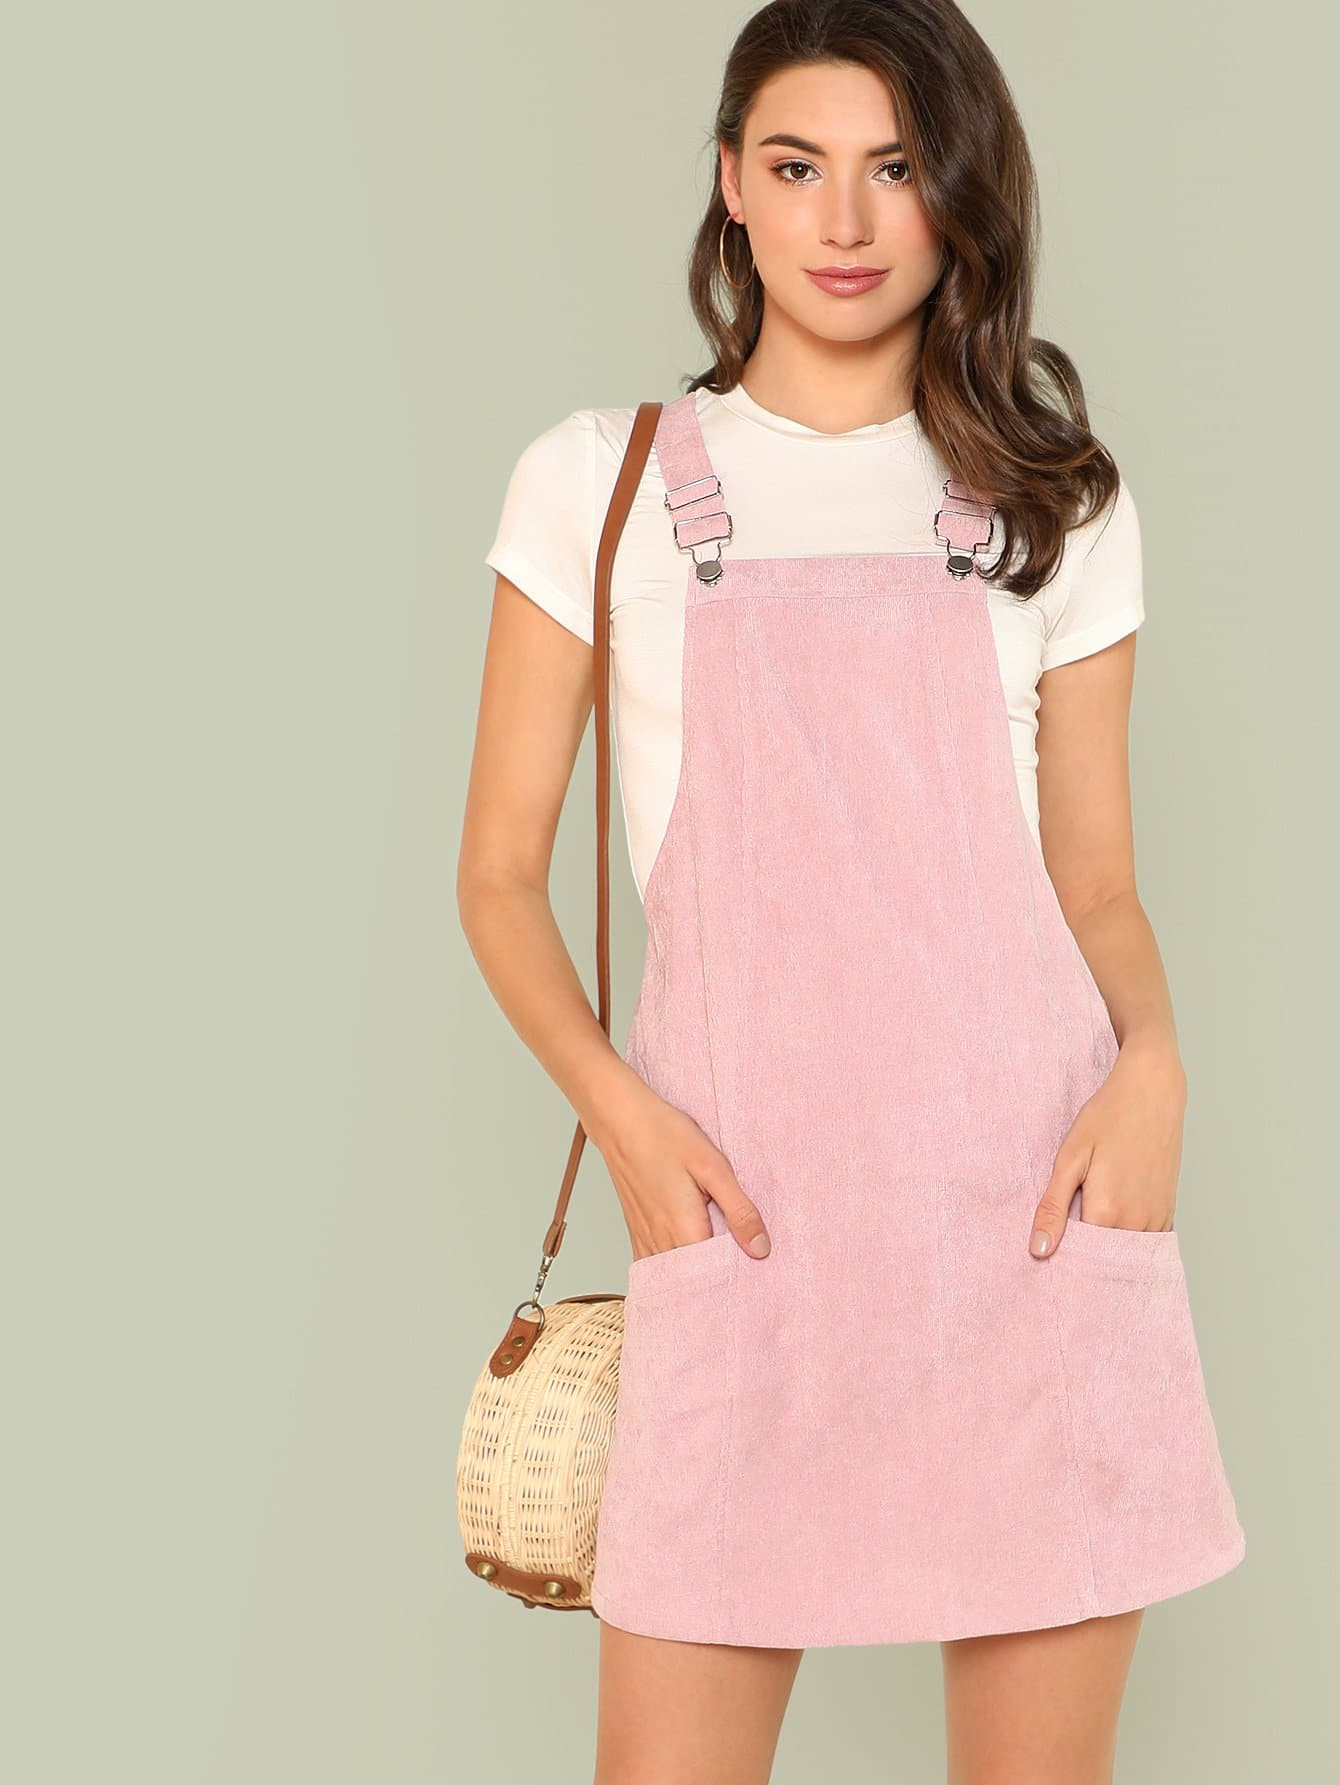 Pocket Patched Solid Overall Dress solid overall dress